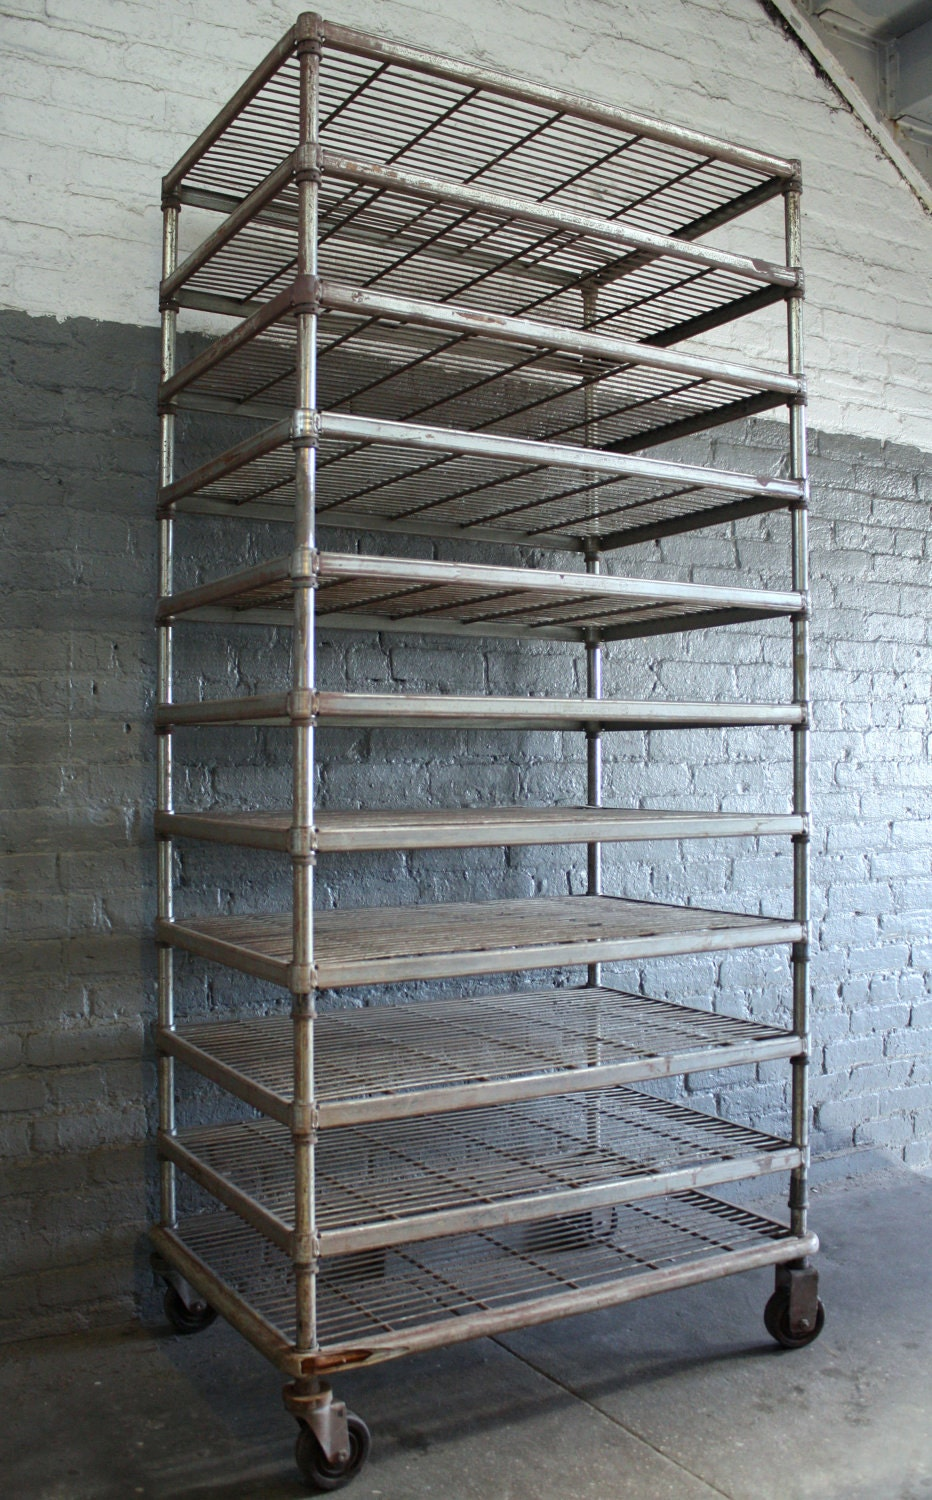 Vintage Bakers Rack Metal Shelving Unit